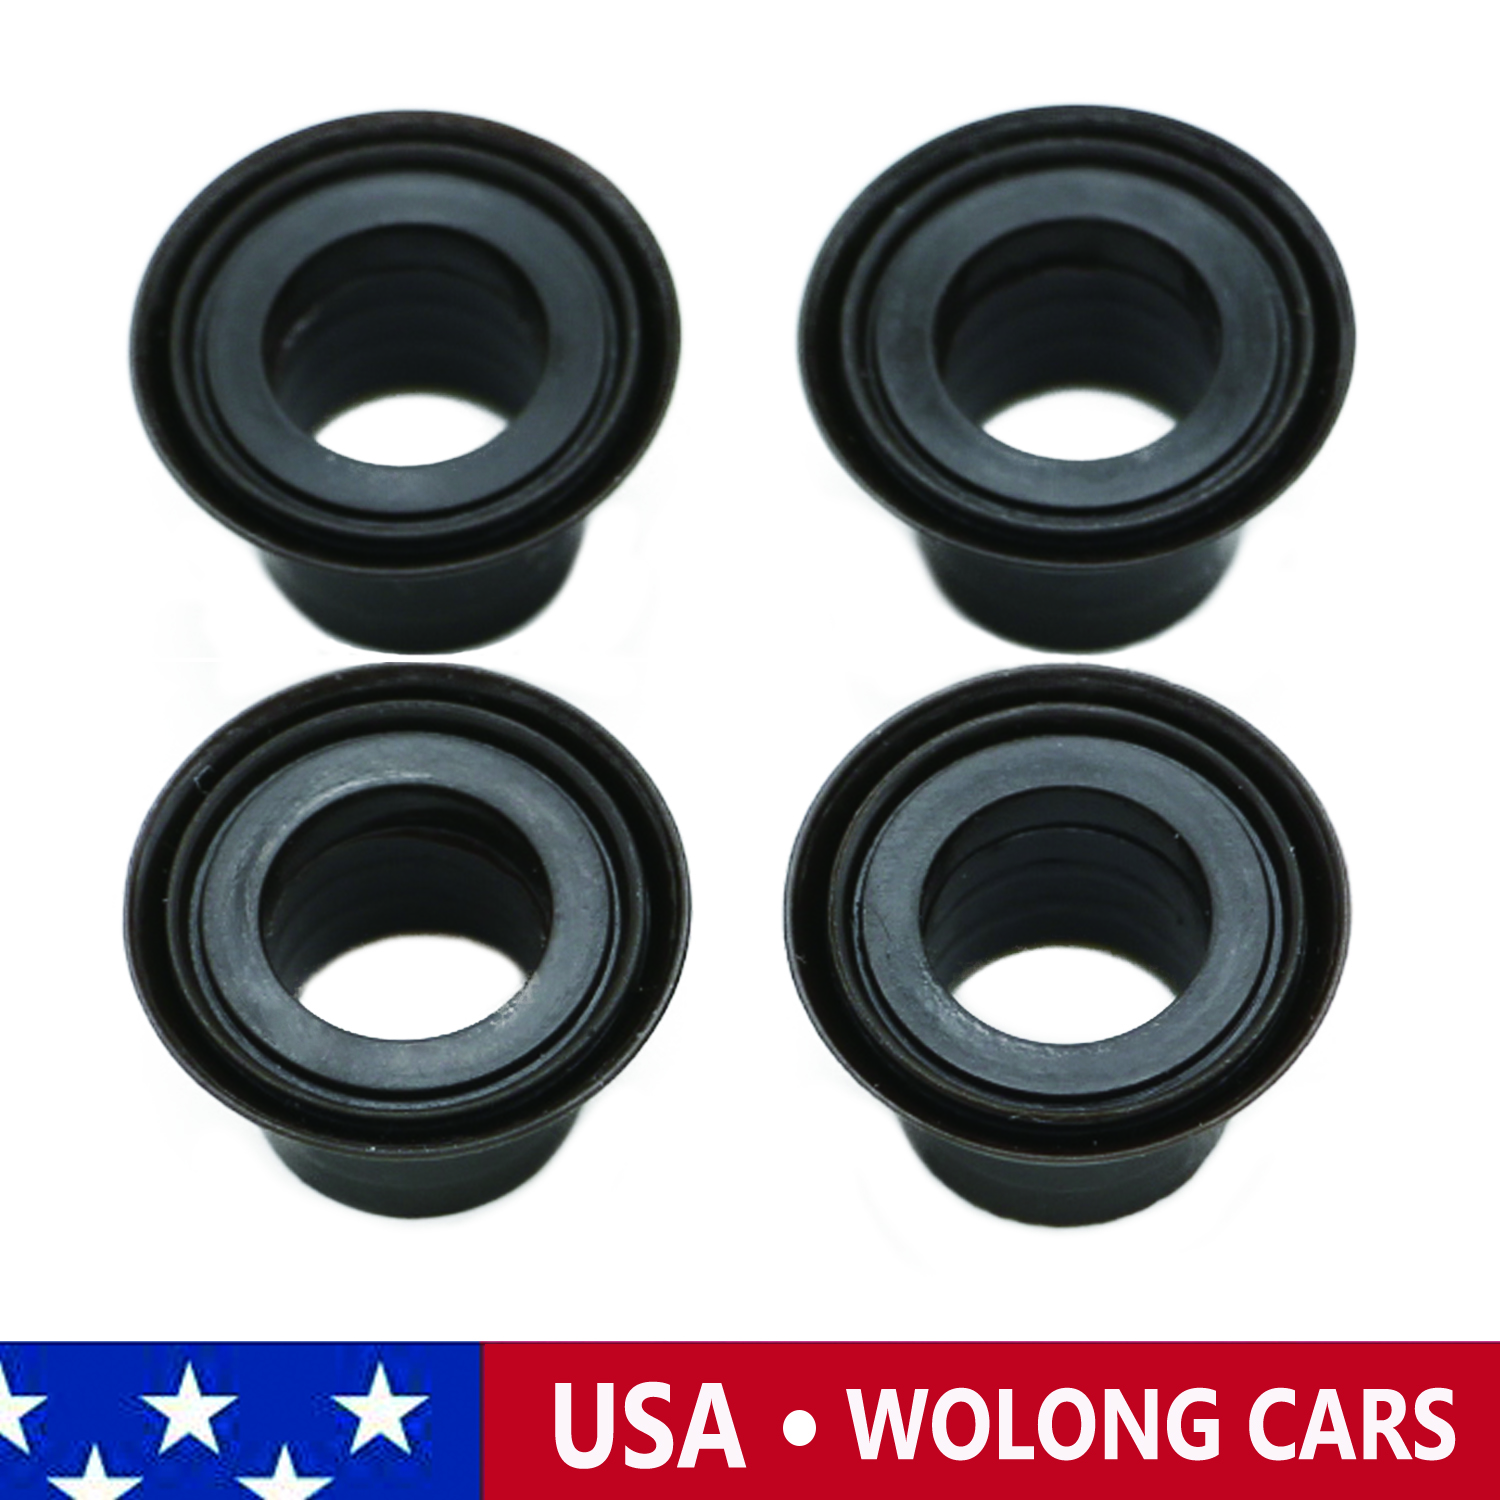 4x Manual Shifter Bushings Fit For Mazda 323 626 Mx